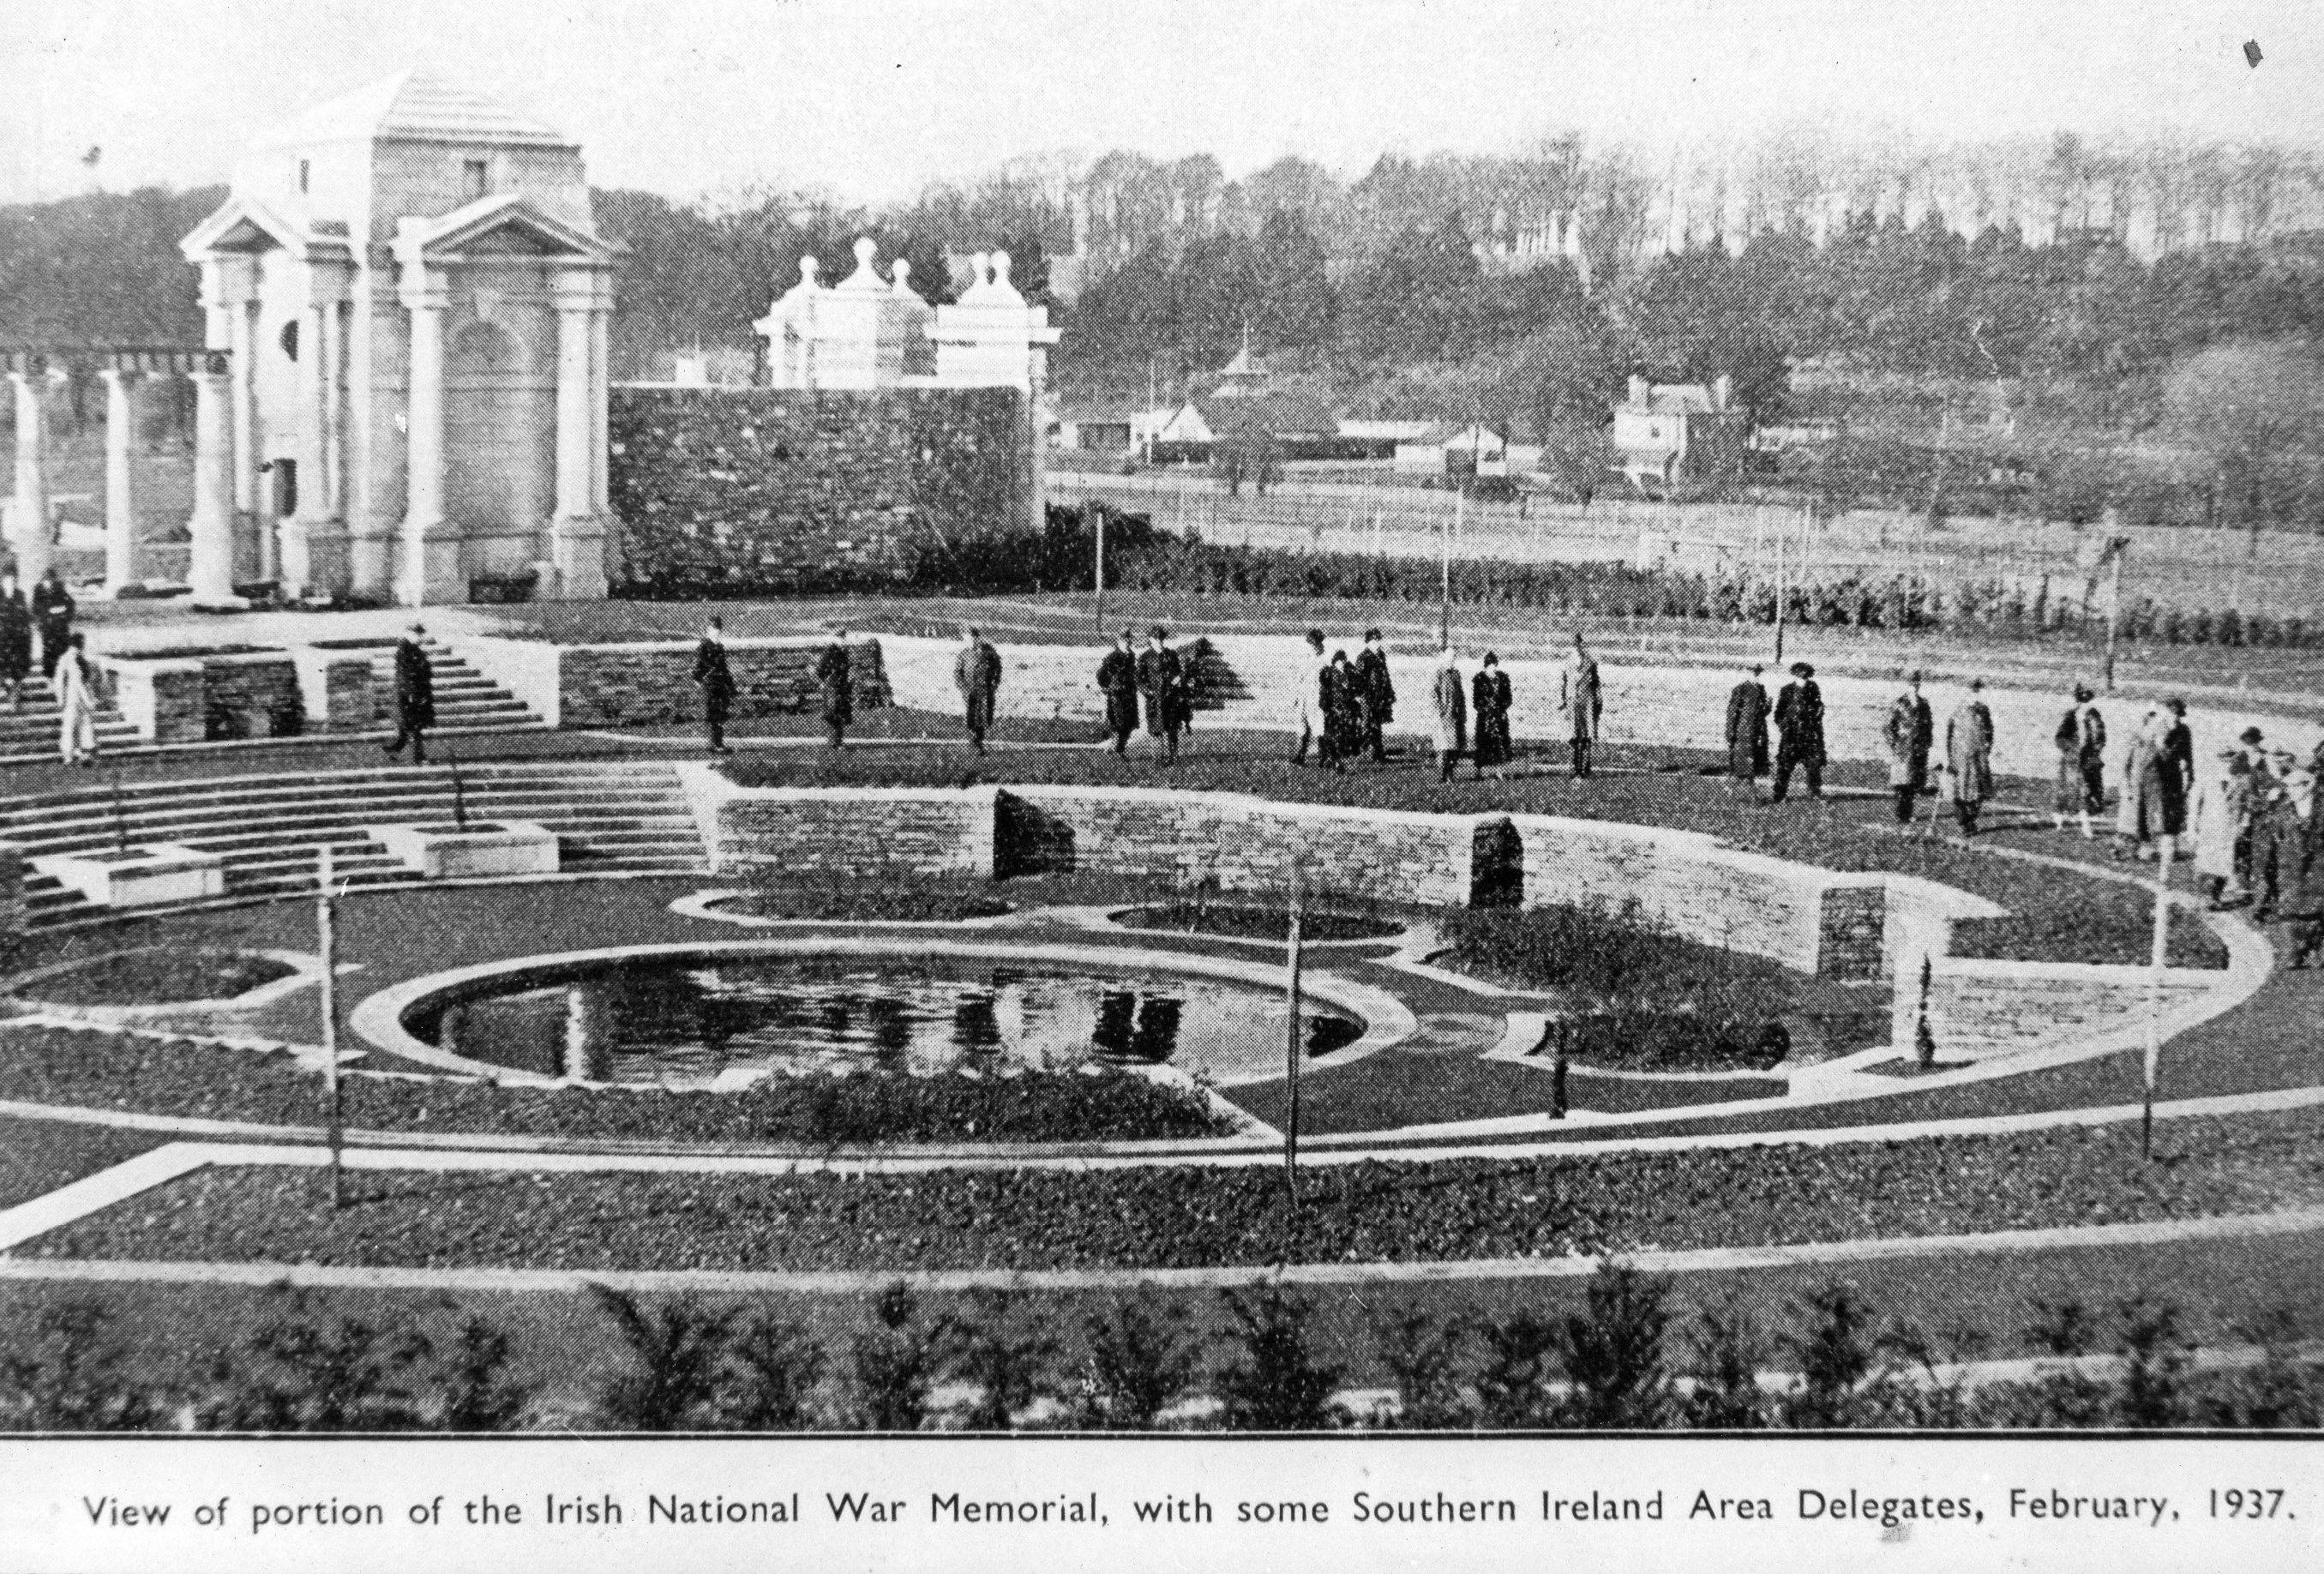 1937 view of the Gardens. OPW.